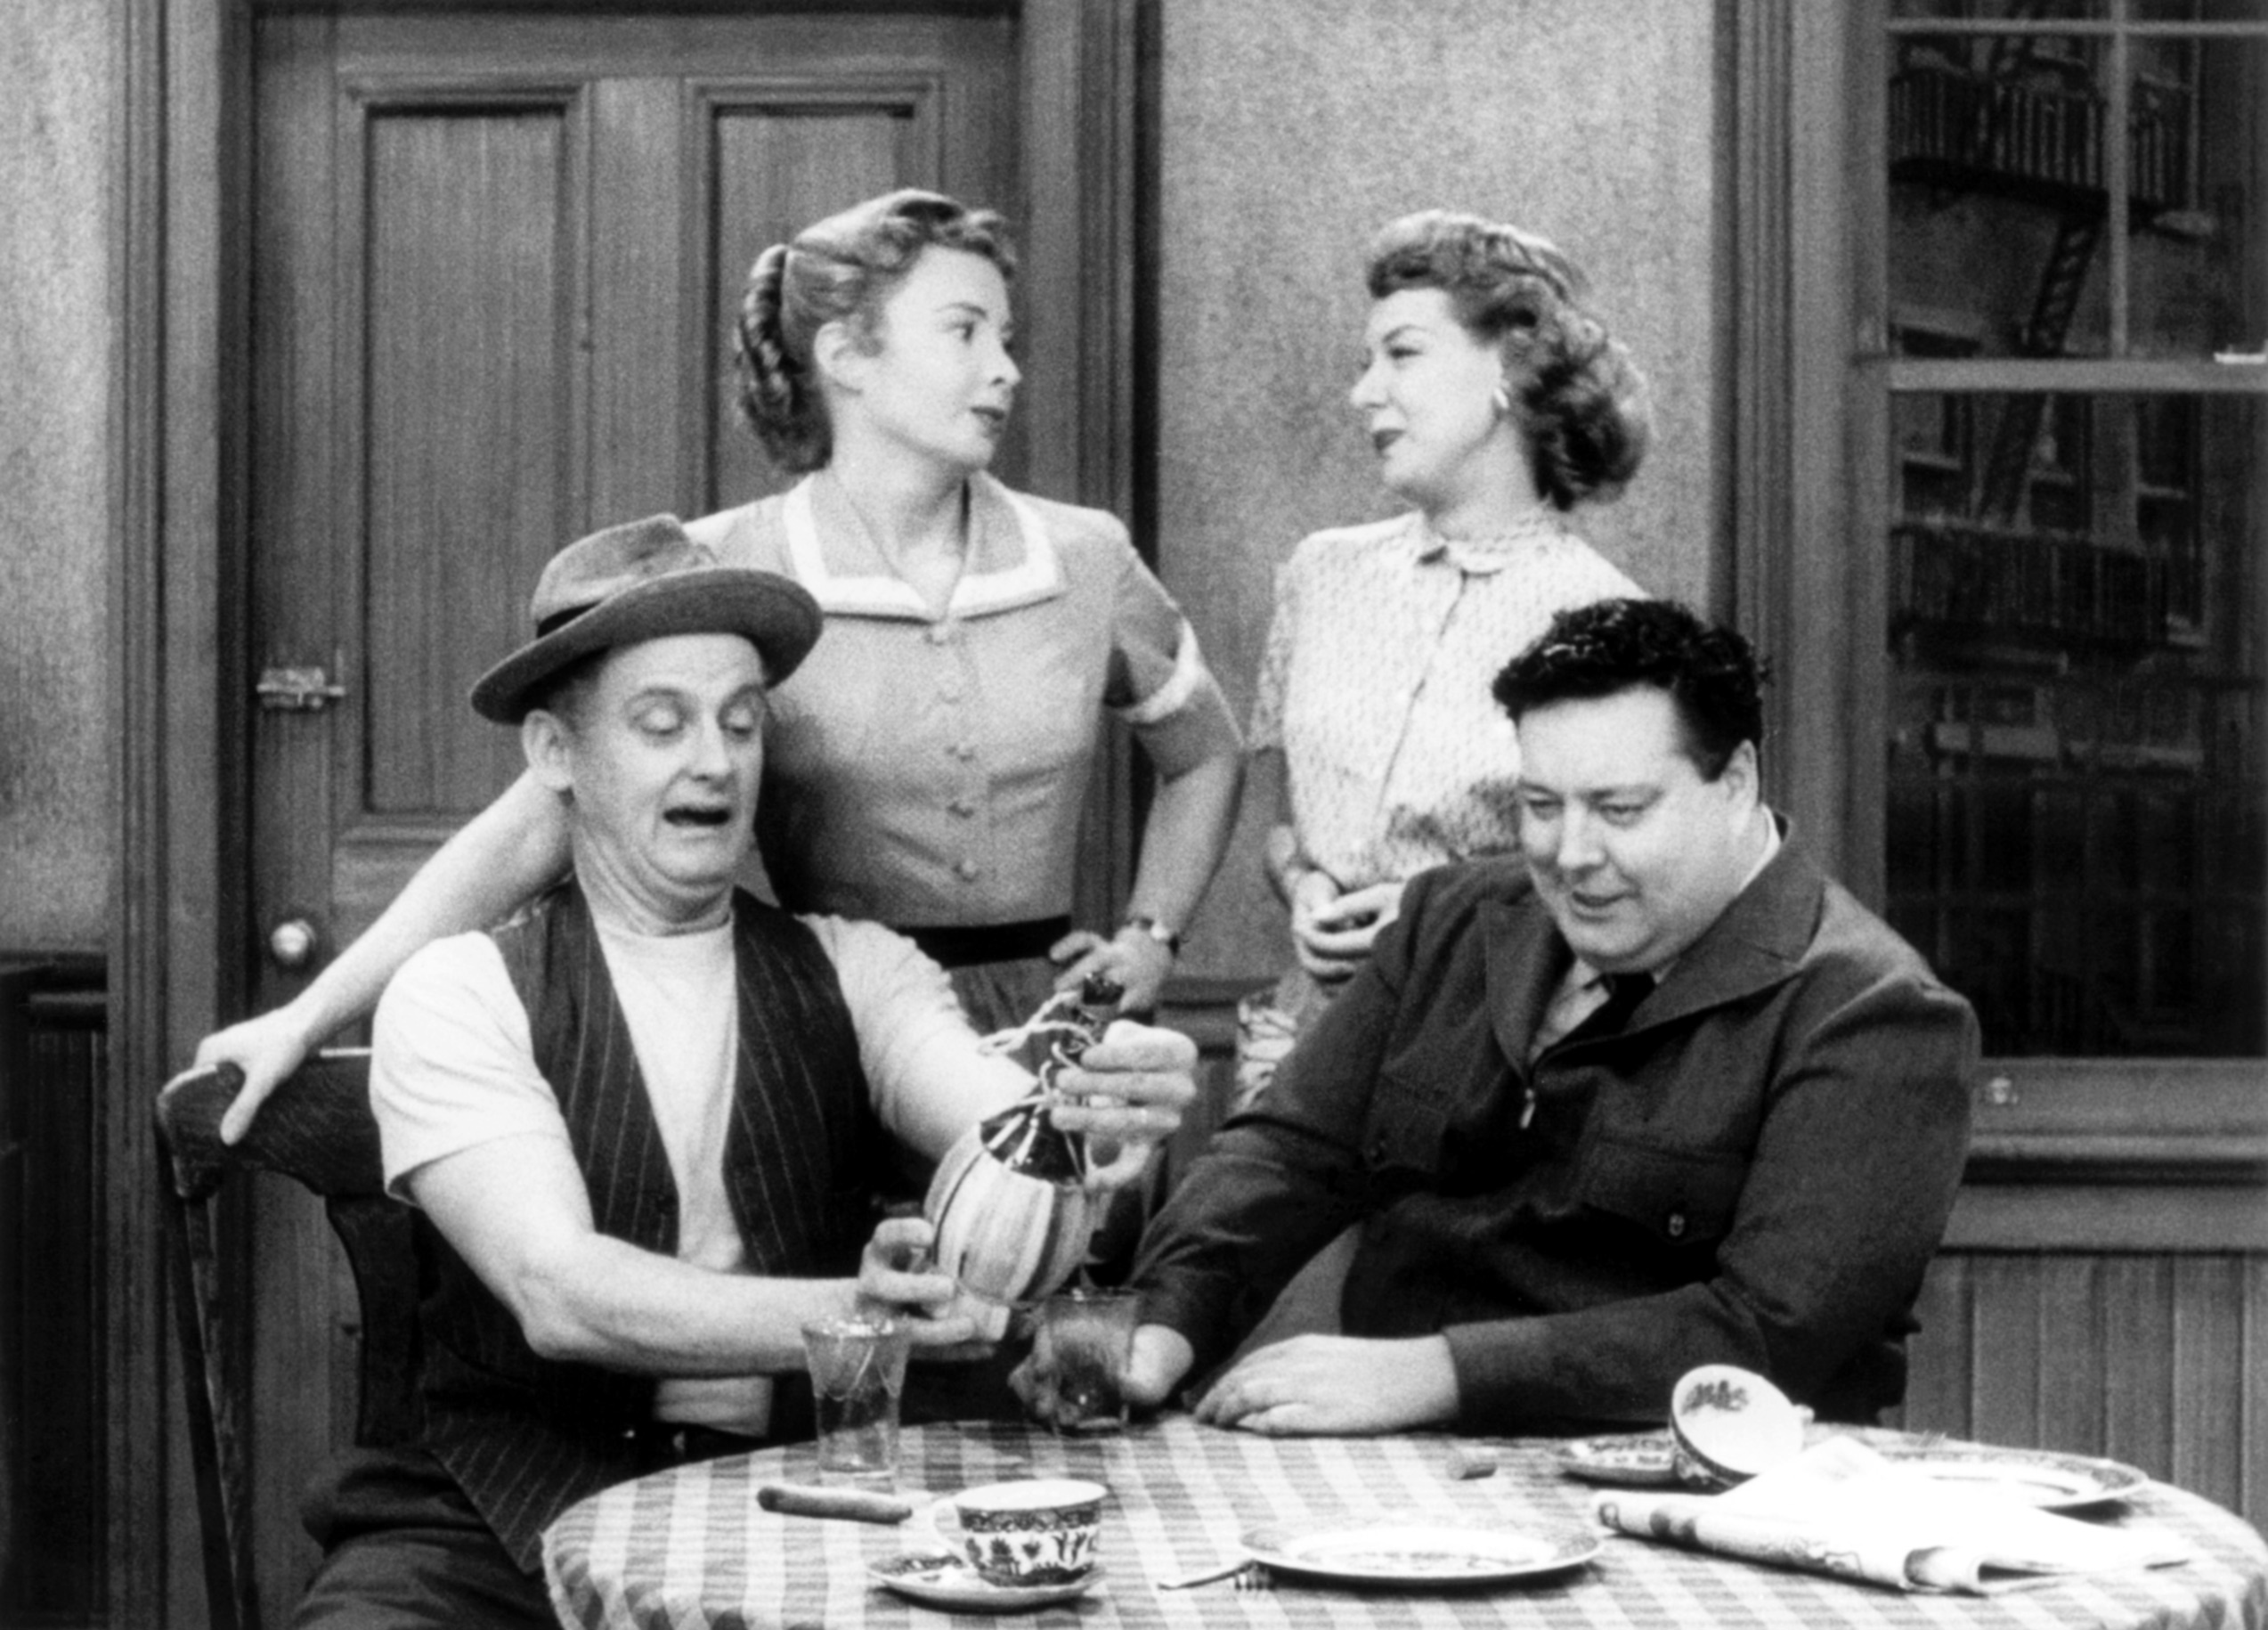 THE HONEYMOONERS, Art Carney, Audrey Meadows, Joyce Randolph, Jackie Gleason, 'Head of the House', (